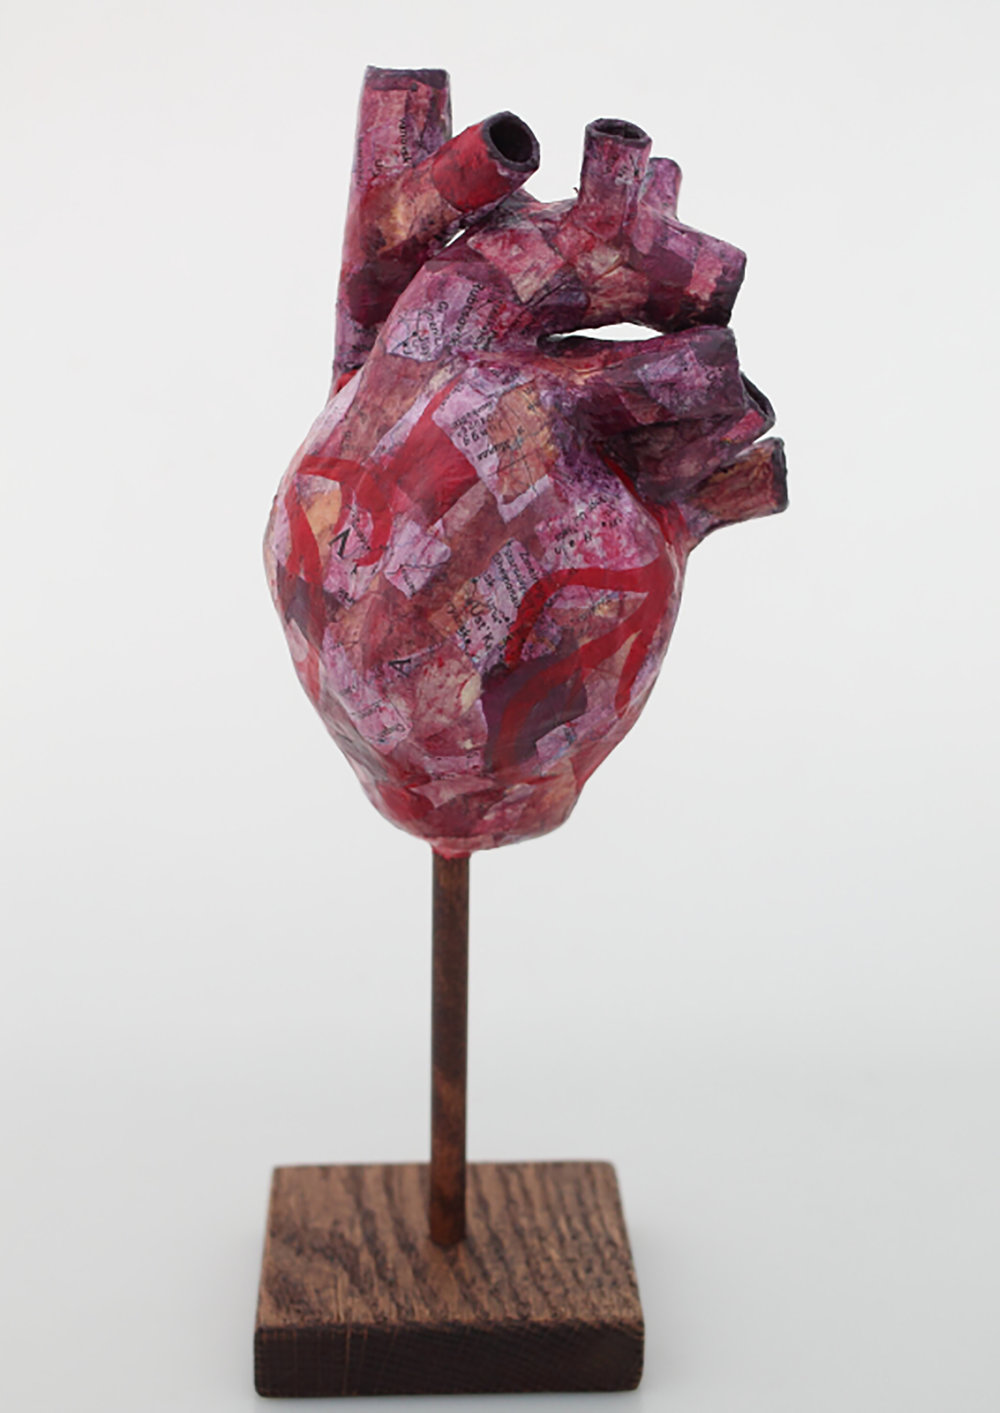 Proud Heart - Green  Papier maché and wood  10 x 4 x 3.5 inches  2016